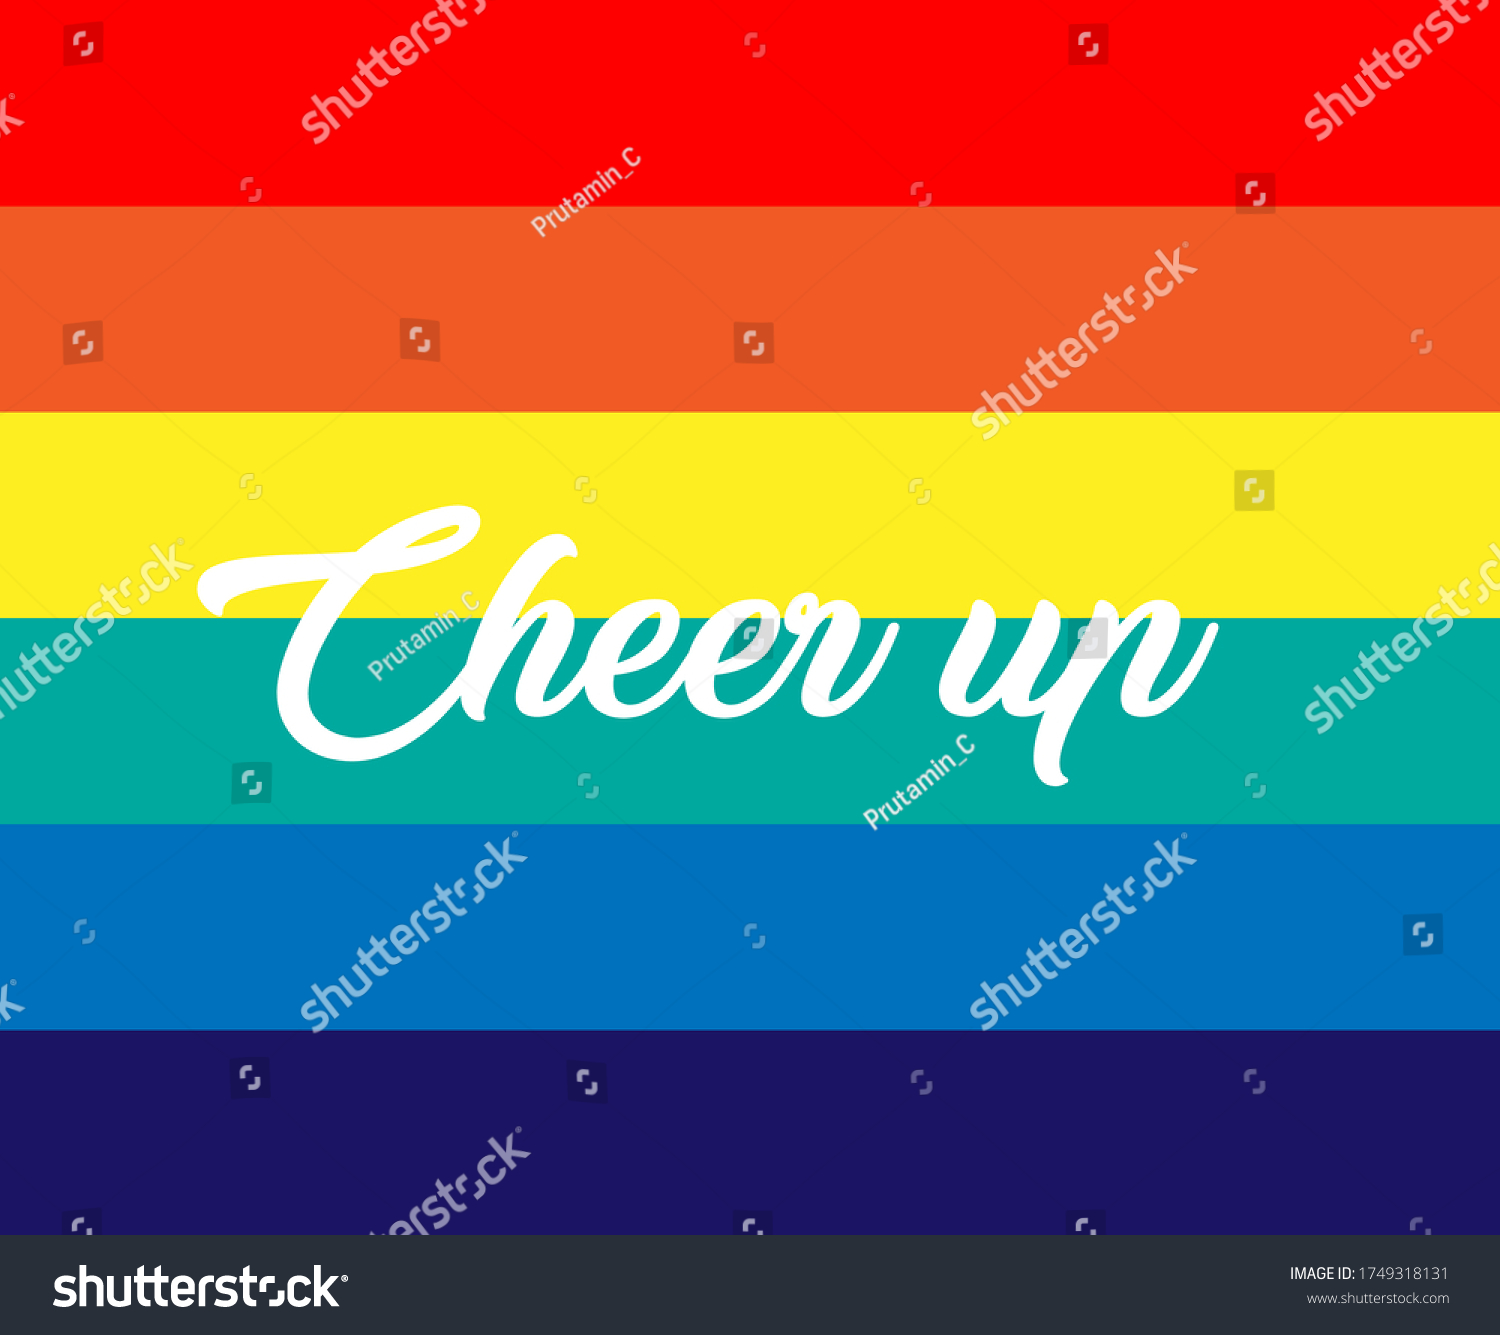 cheer up, beautiful greeting card background or template banner with rainbow theme. vector design illustration